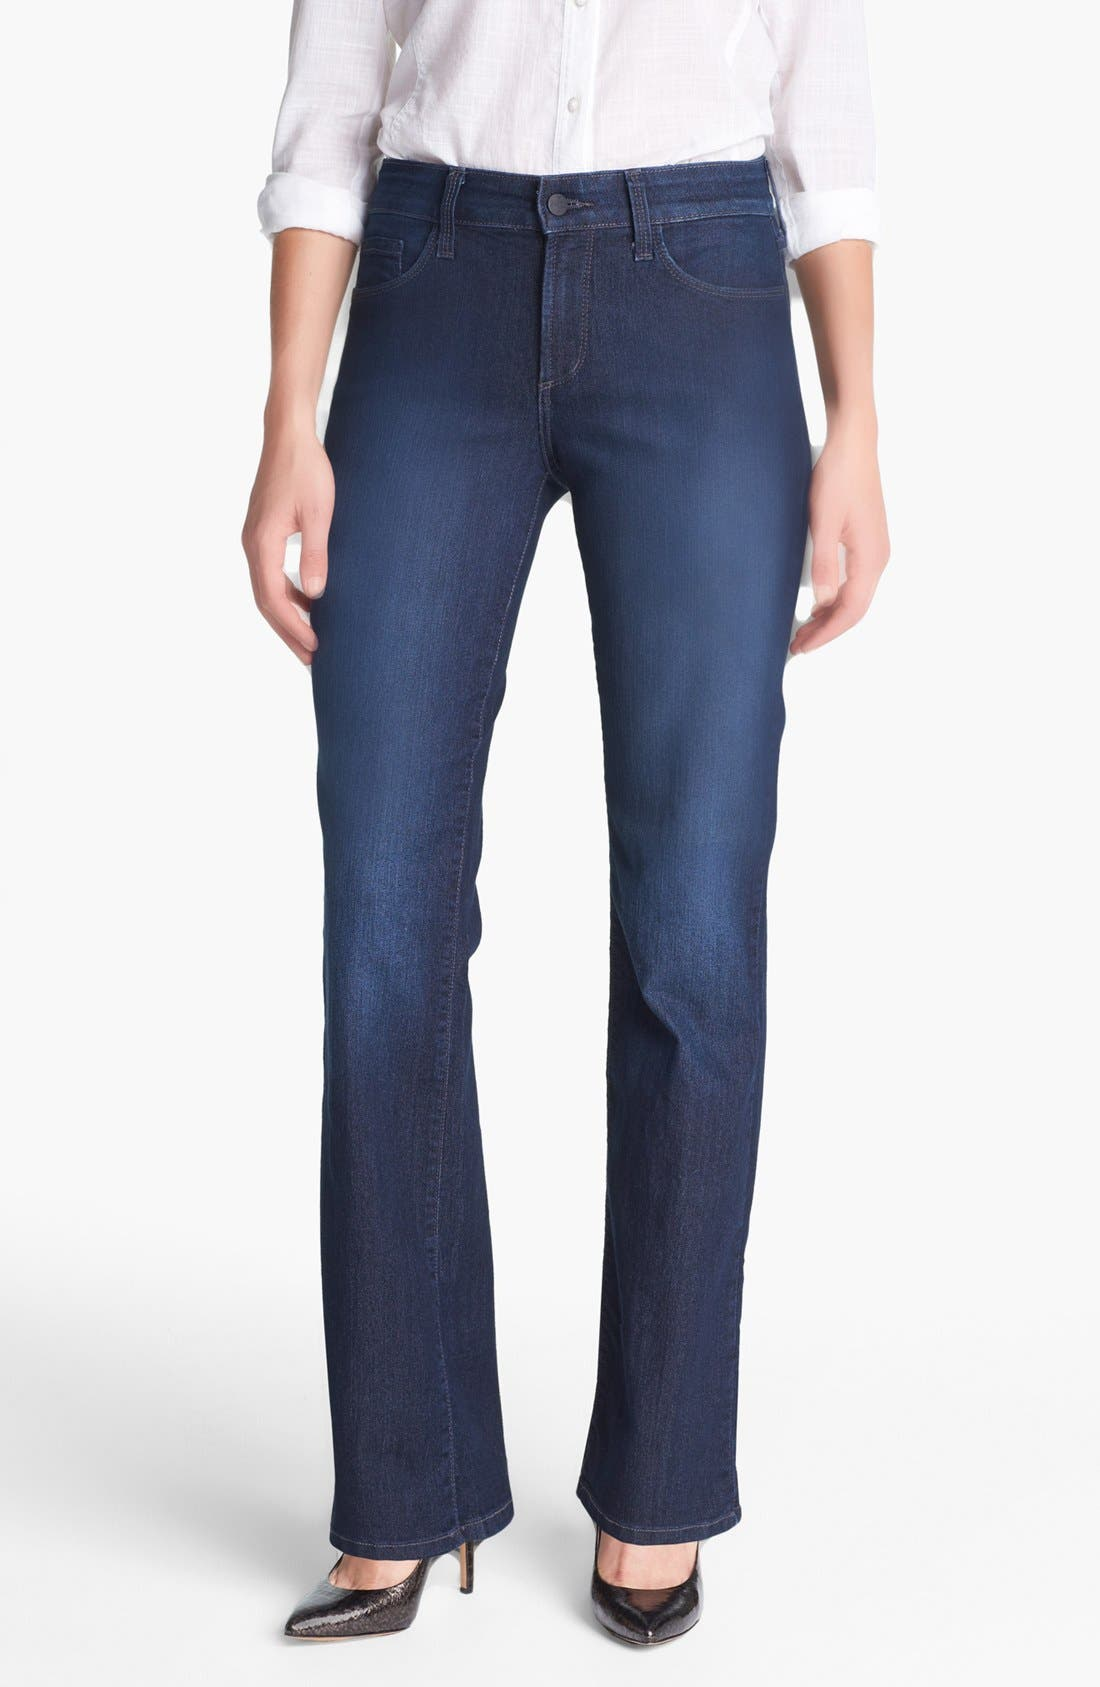 Alternate Image 1 Selected - NYDJ 'Barbara' Embellished Stretch Bootcut Jeans (Burbank)